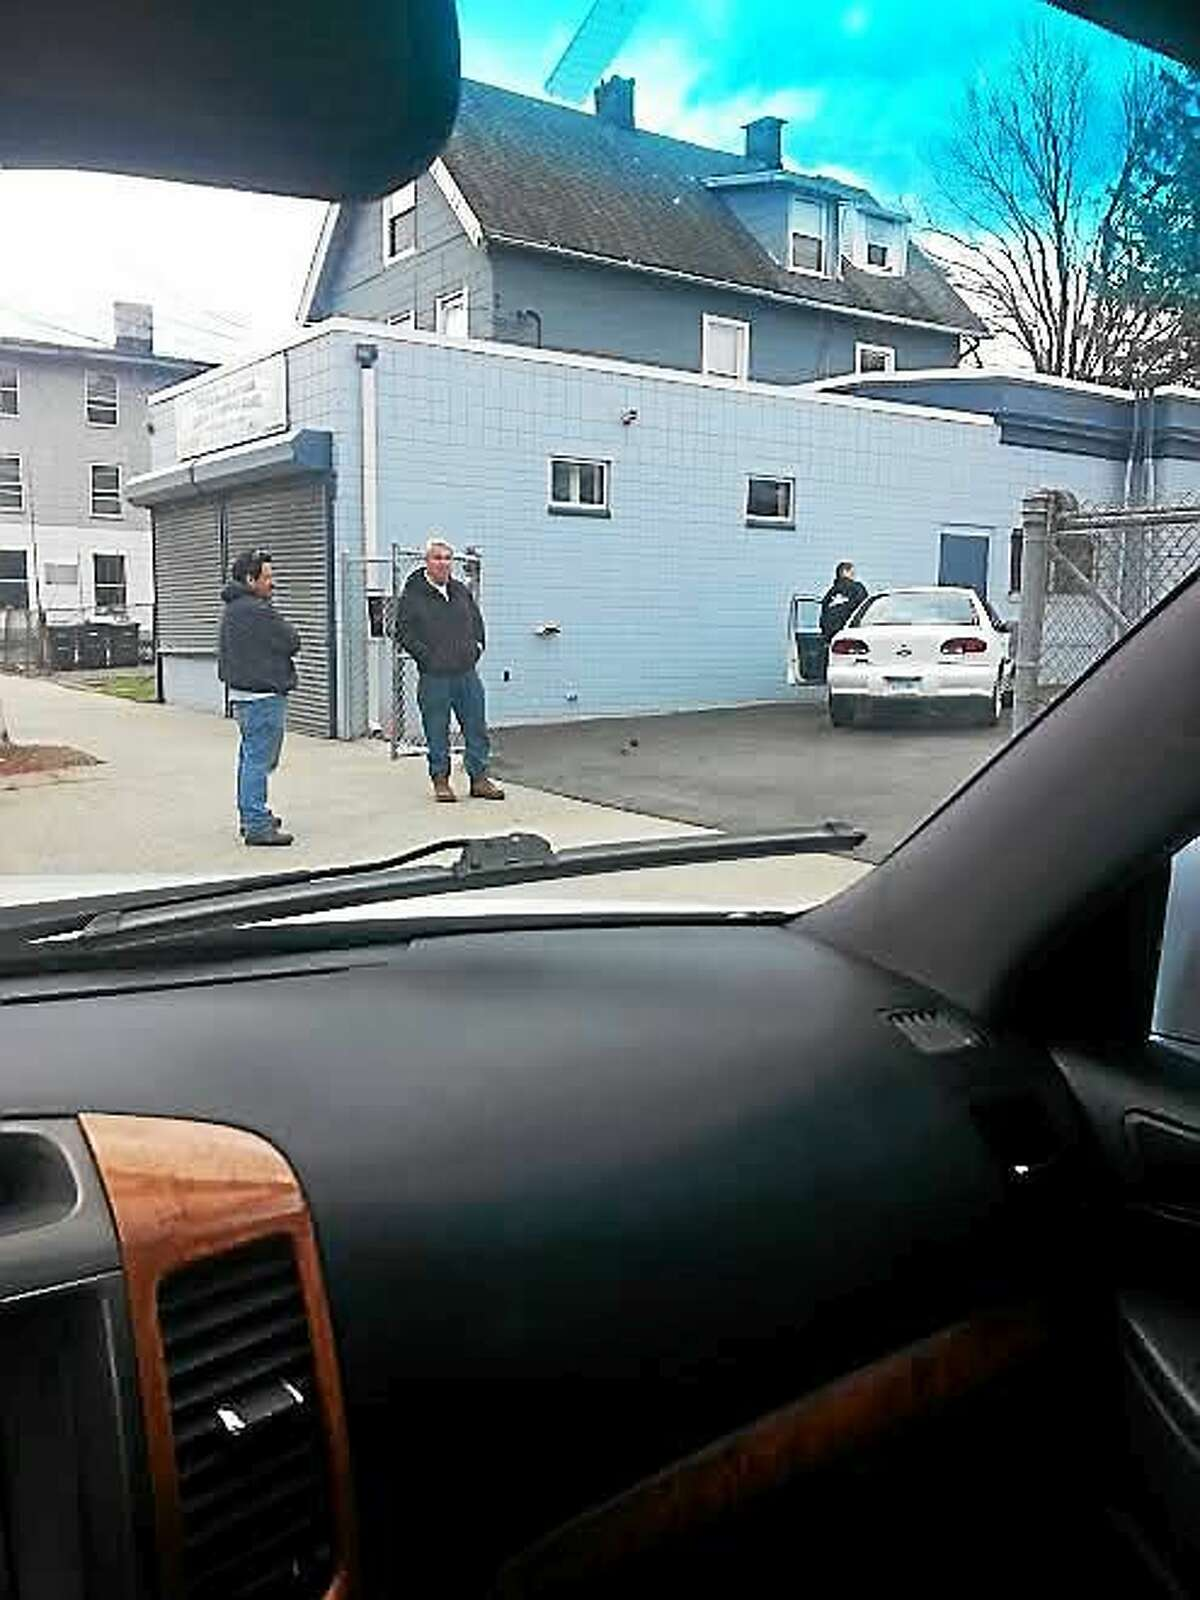 LCI in Parking Lot 316 Dixwell Ave. on April 24. Contributed photo